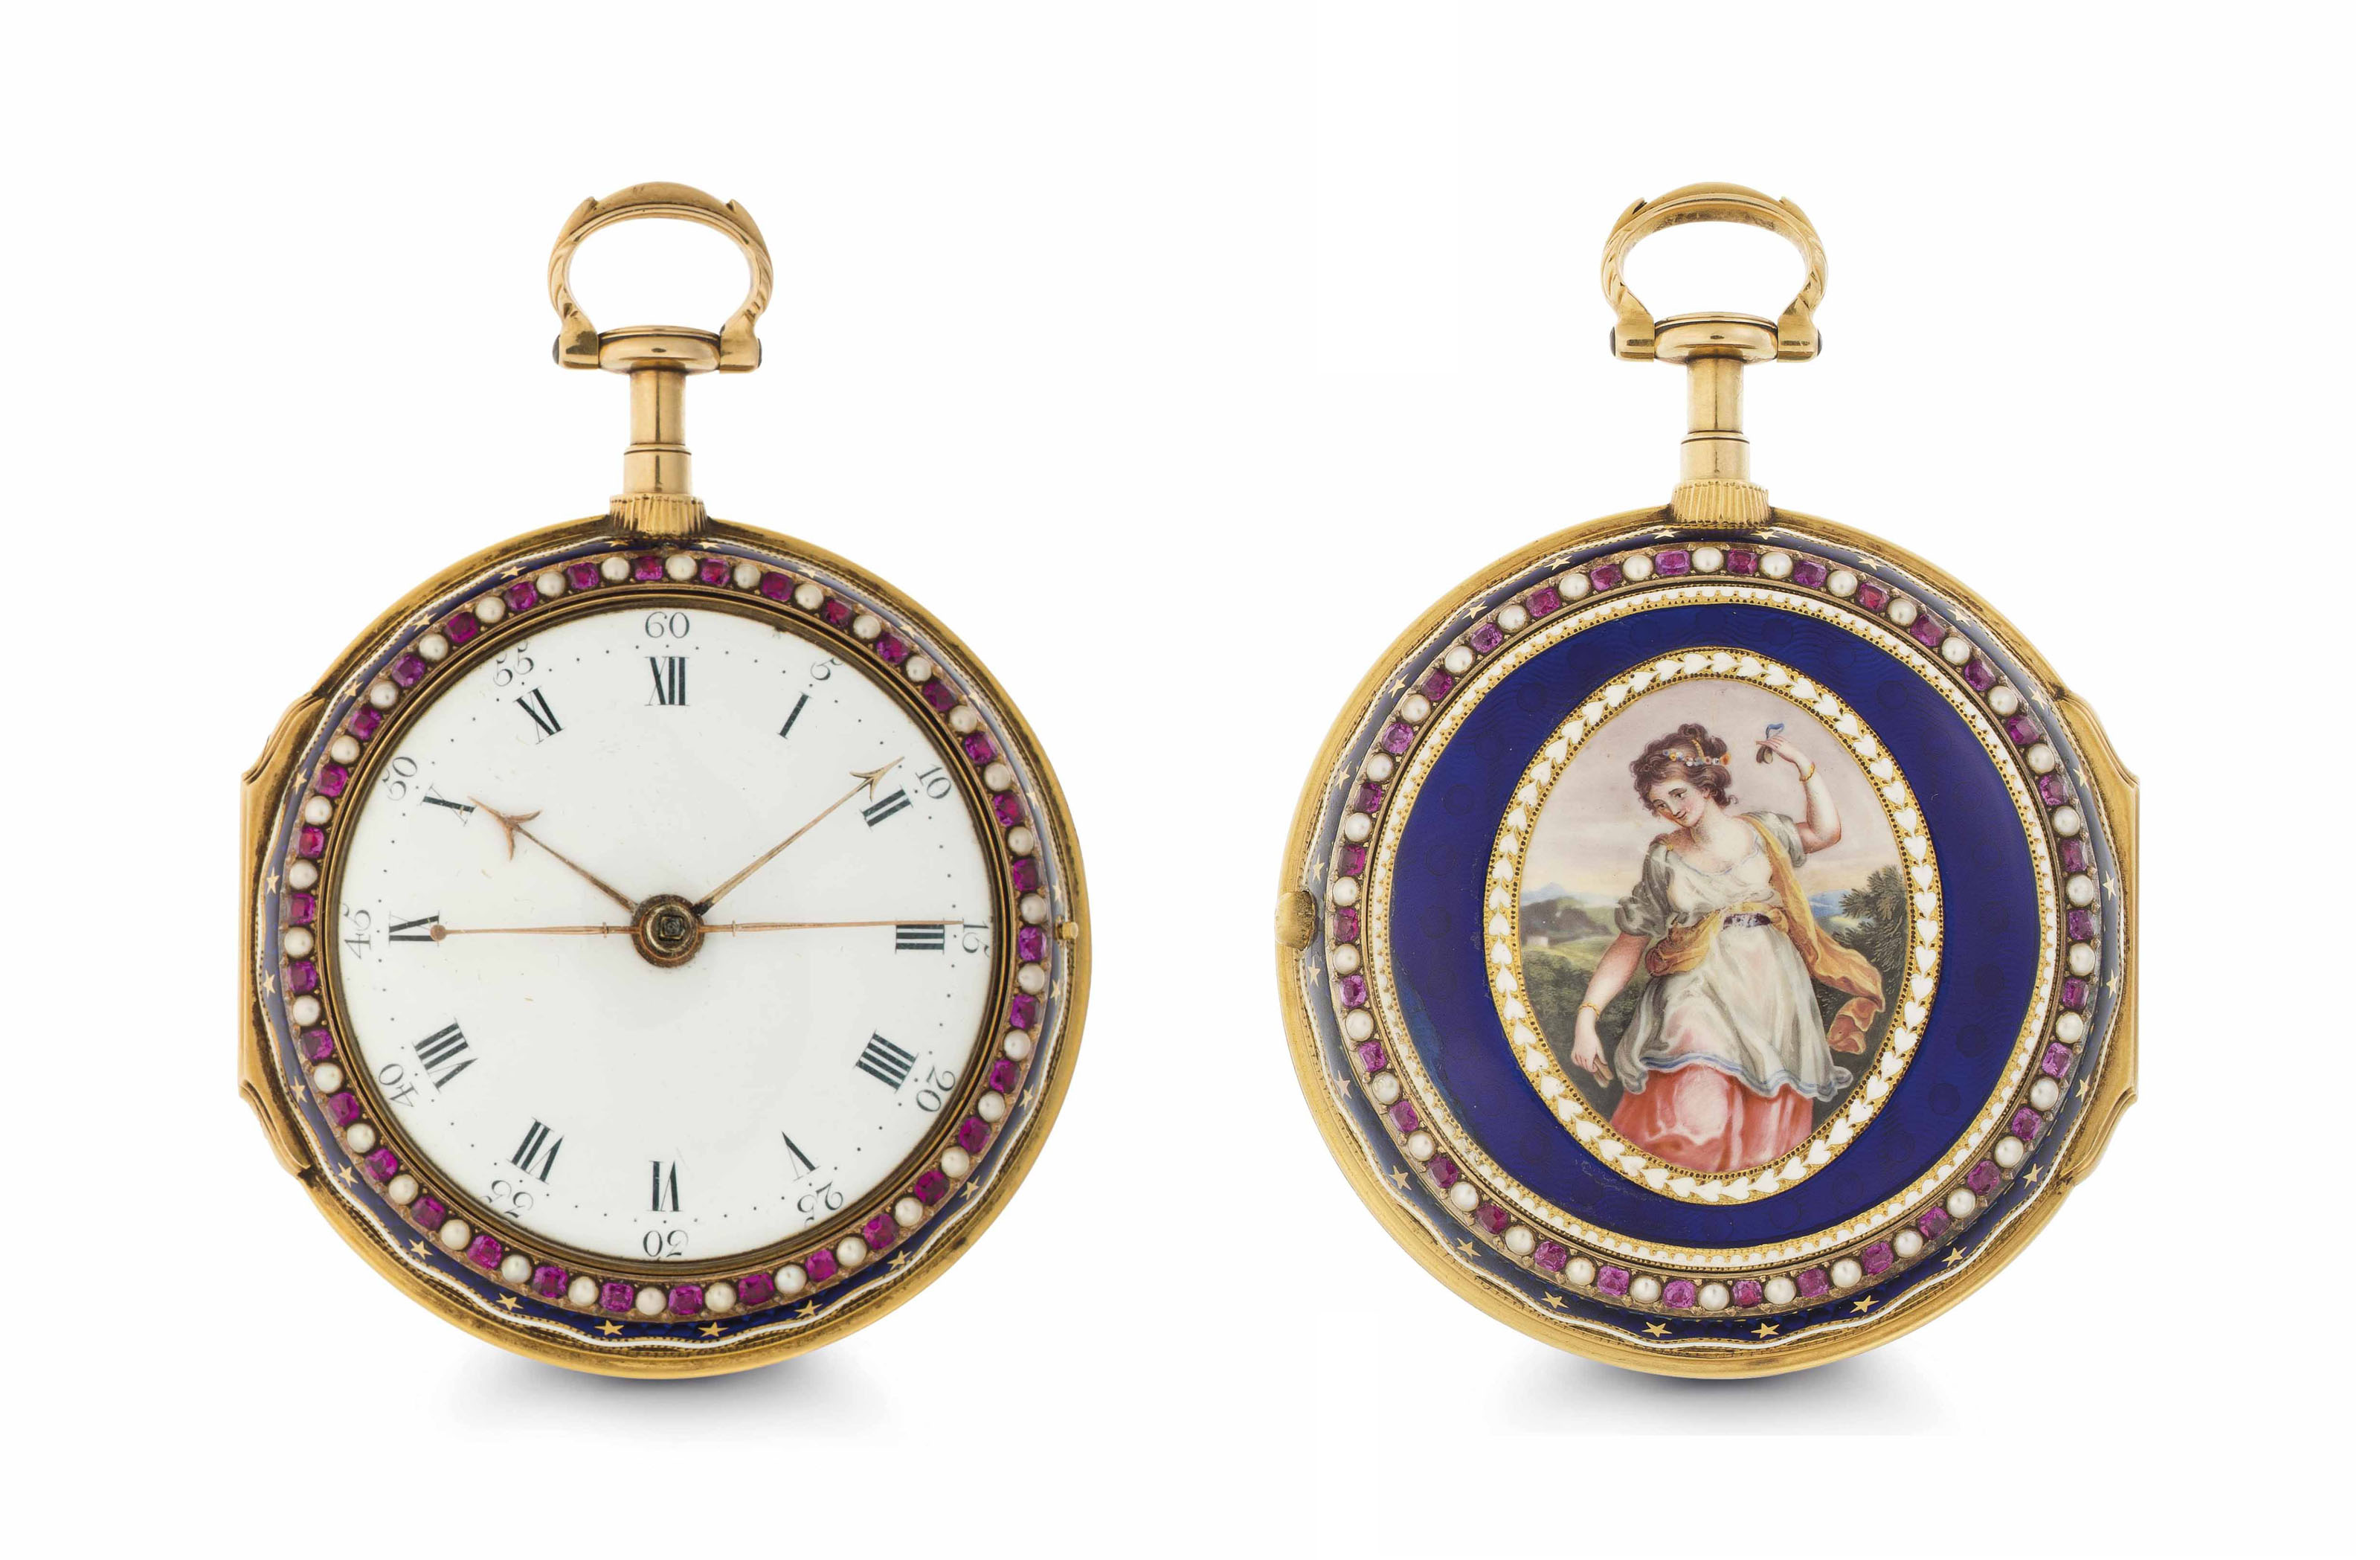 Francis Perigal. A Fine and Rare 18k Gold, Enamel and Pearl-set Pair Case Two Train Striking Clock Watch with Center Seconds